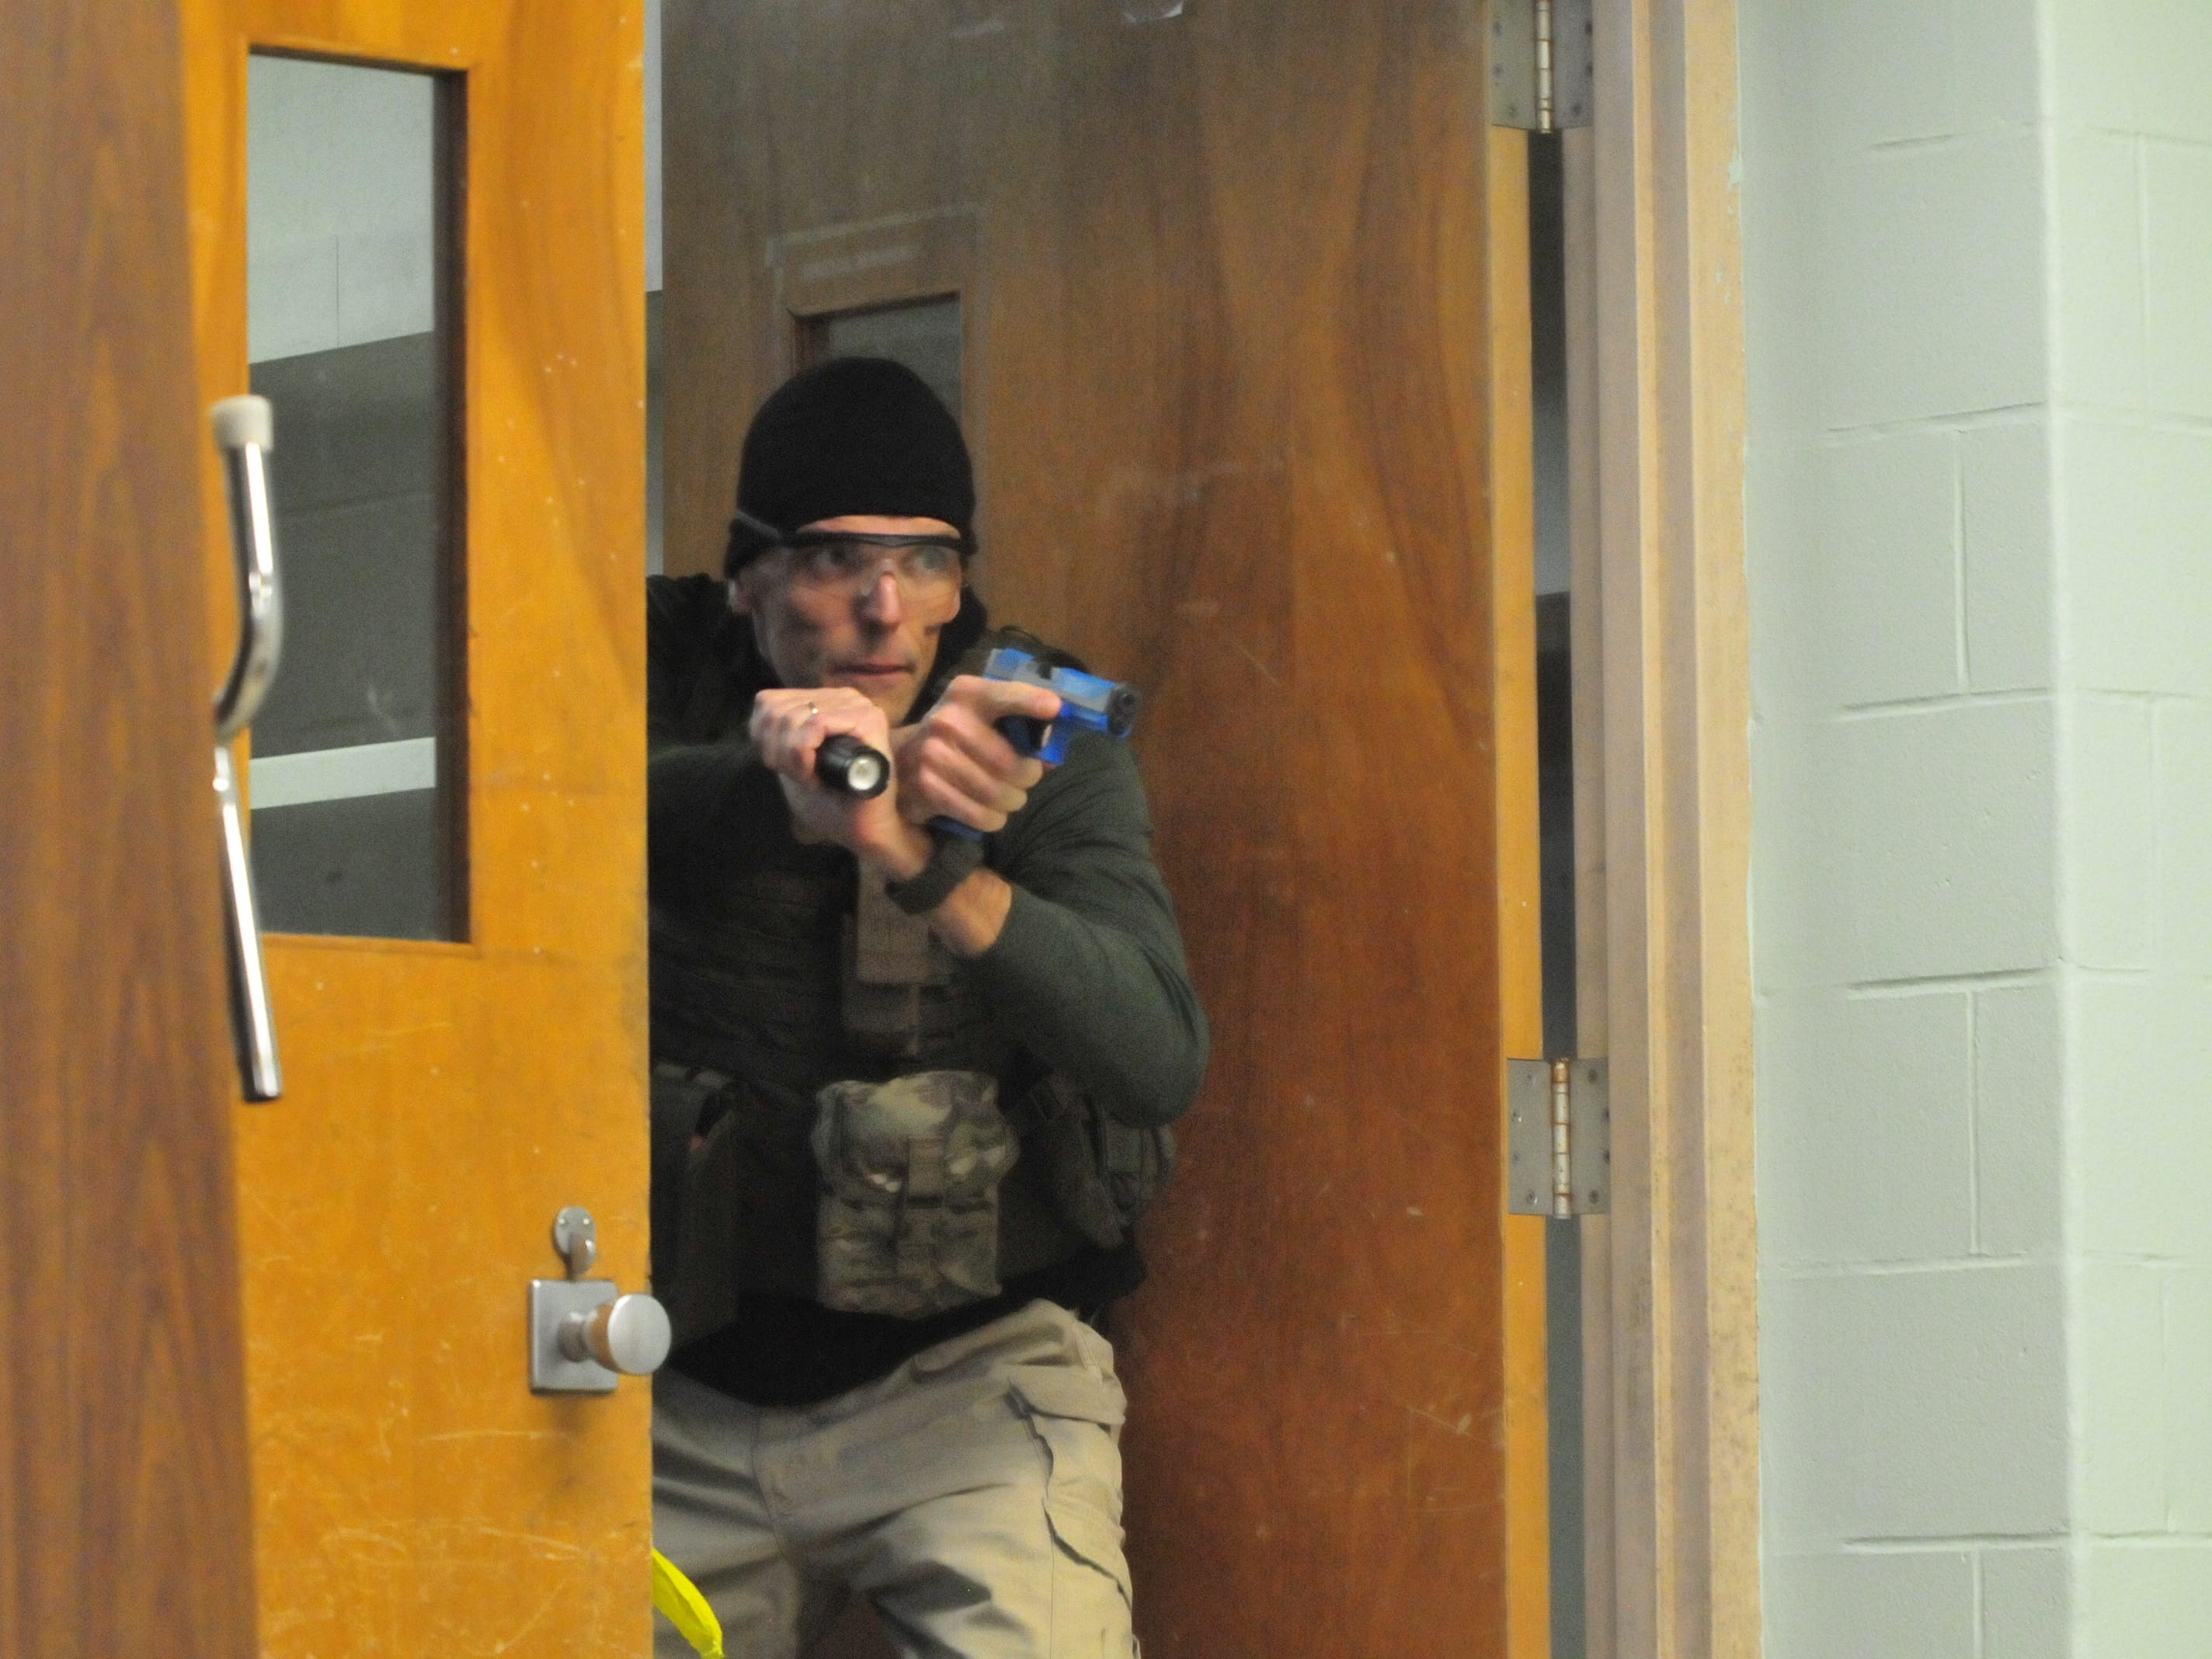 Richmond Police Department Detective Ron Pennington enters a room during an active-shooter scenario inside the former Pleasant View school building.